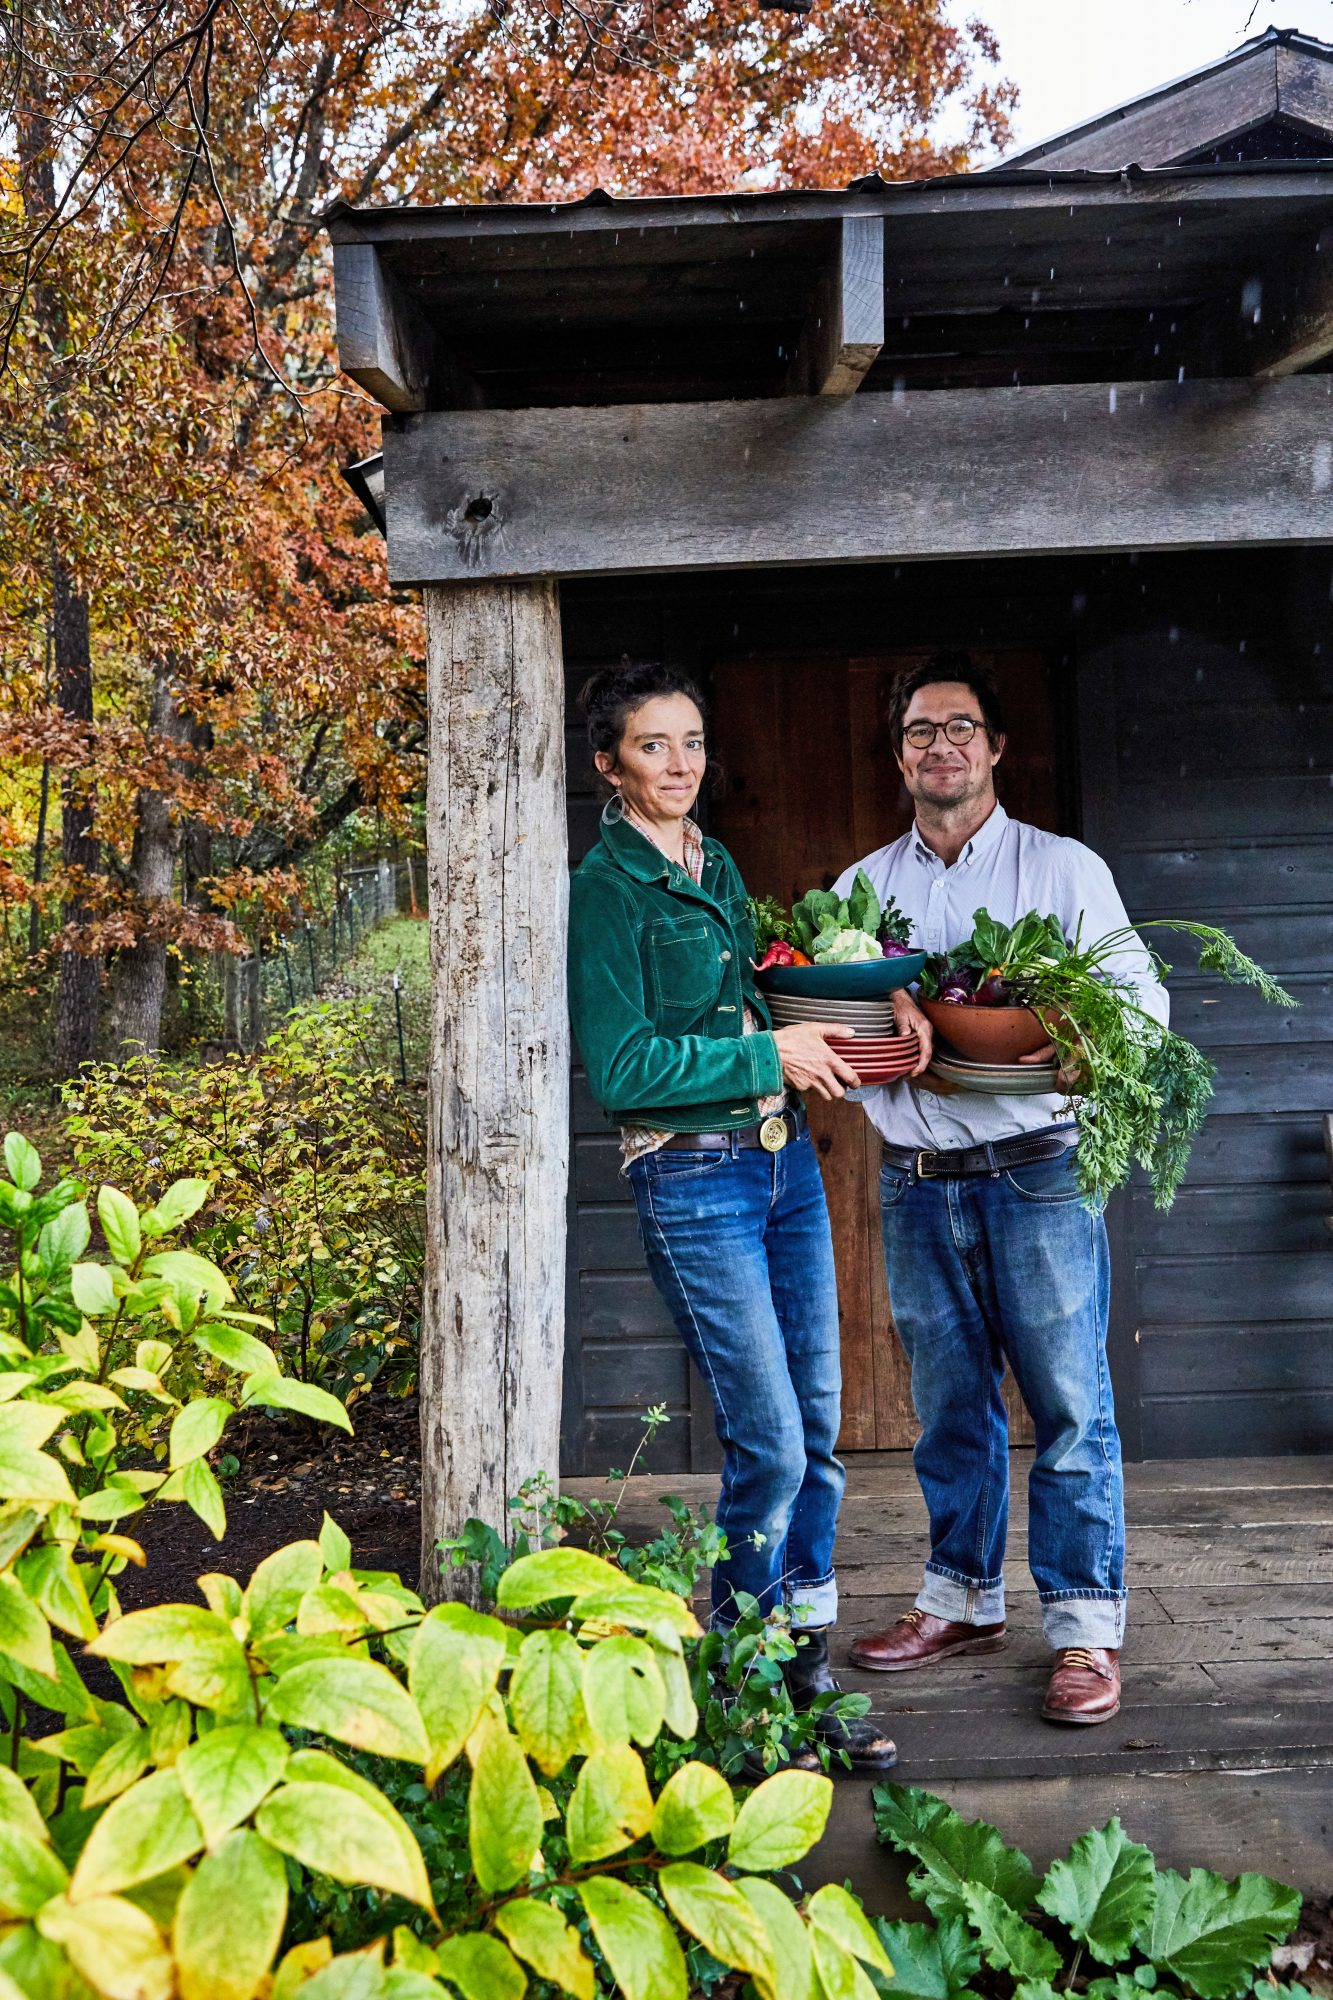 Anne and Aaron Grier of Gaining Ground Farm